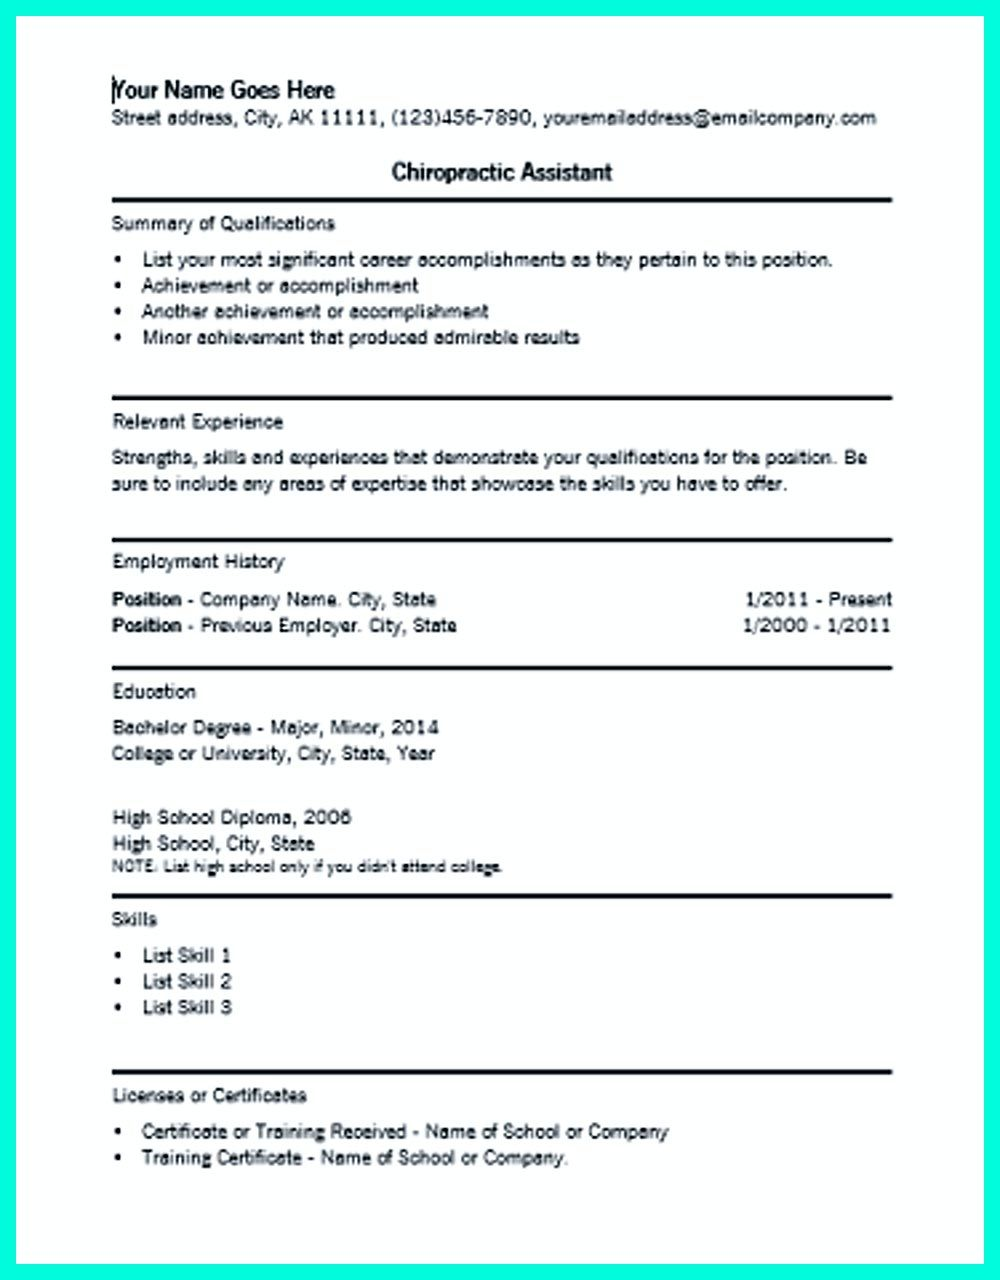 in chiropractic assistant resume chiropractic assistant objectives need to be mentioned it is for. Resume Example. Resume CV Cover Letter